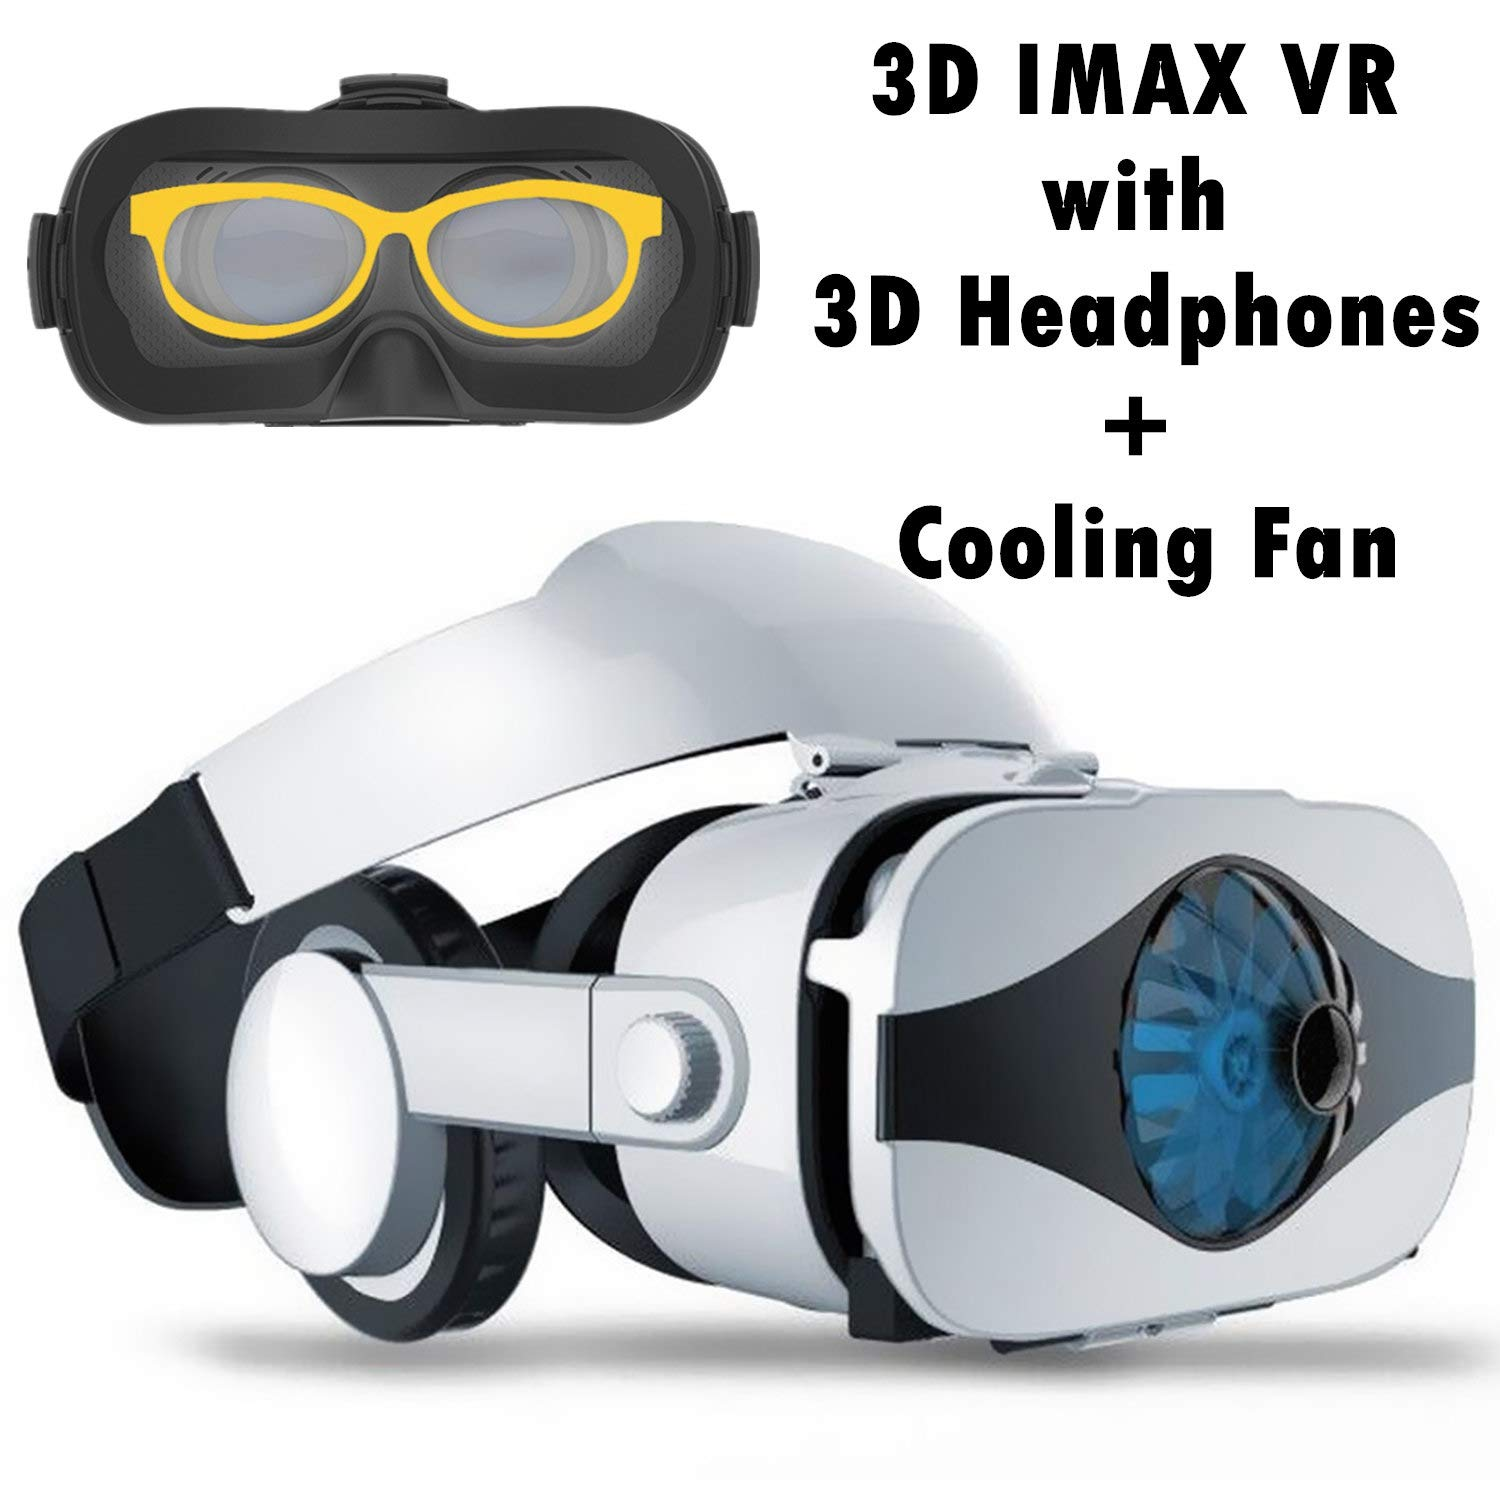 VR Headset Virtual Reality Goggle w/Headphone & Fan for 3D Movie Game, VR Glasses Compatible for iPhone Xs MAX XR X 8 7 Plus Samsung Galaxy S9 S8 S7 Edge Note 5 4 3 LG G7 G6 G5, 360 VR Viewer White by TSANGLIGHT